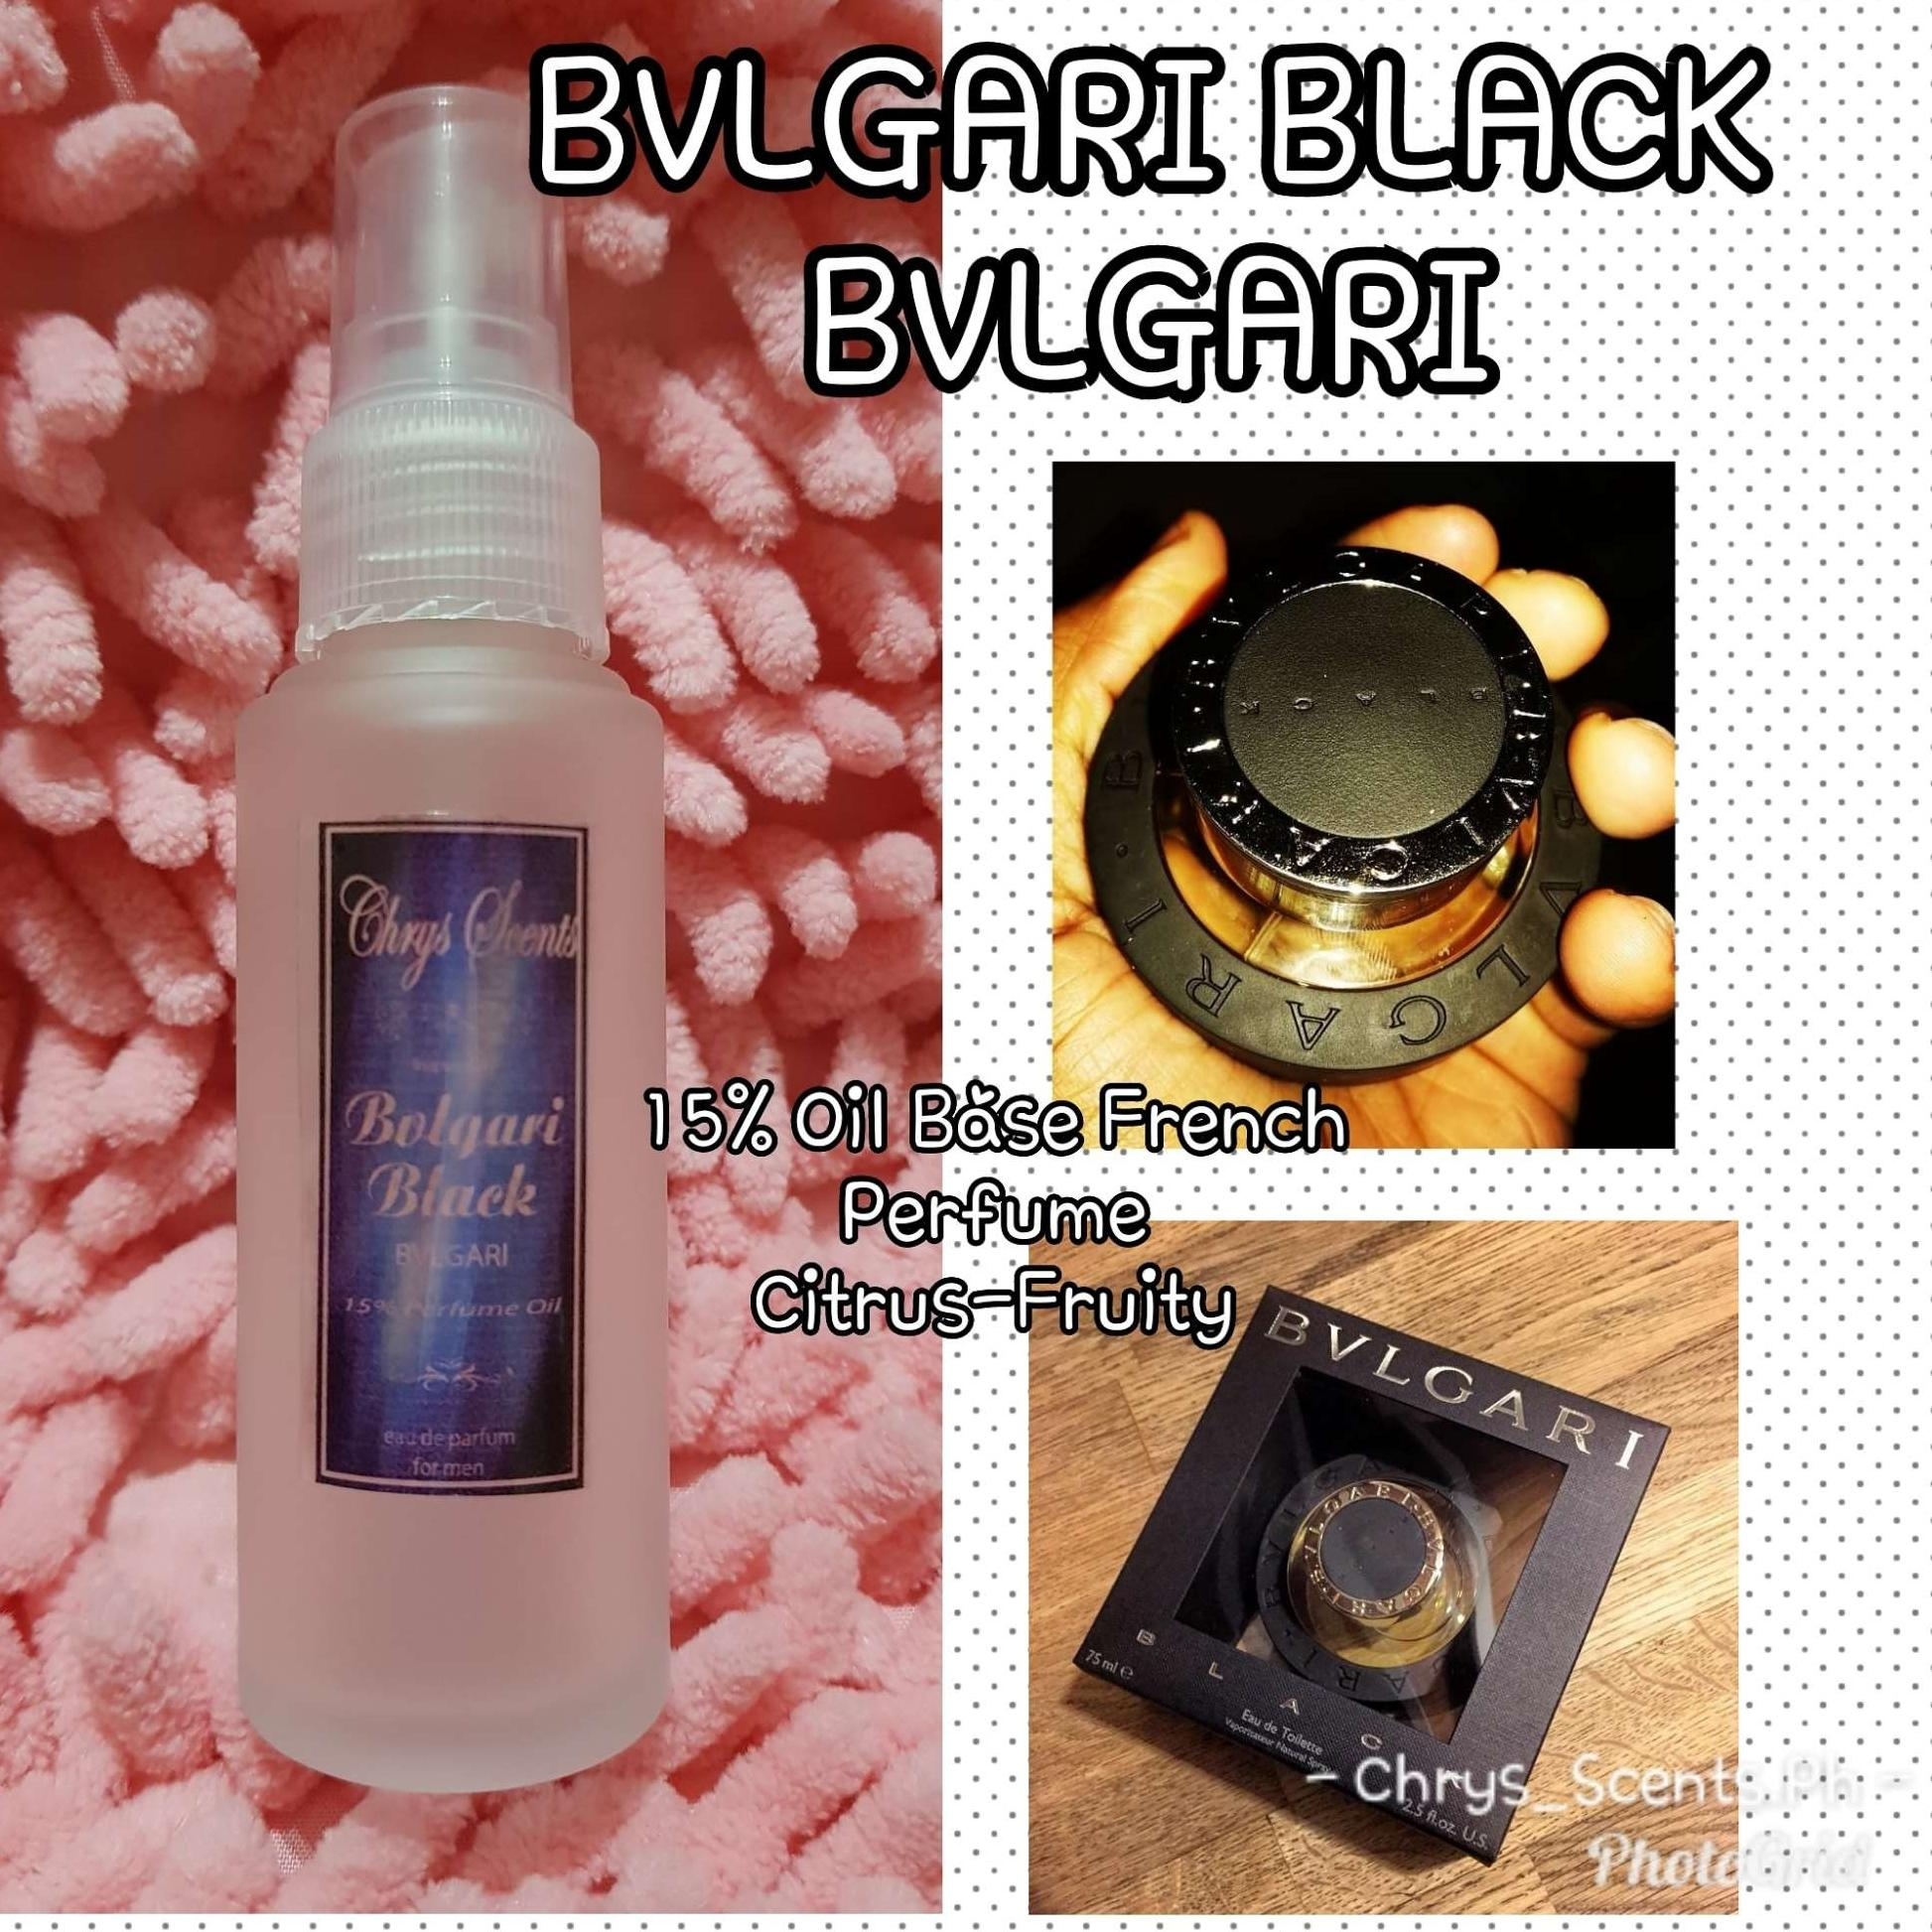 BVLGARI BLACK by BVLGARI Inspired Oil Base French Perfume 50ml